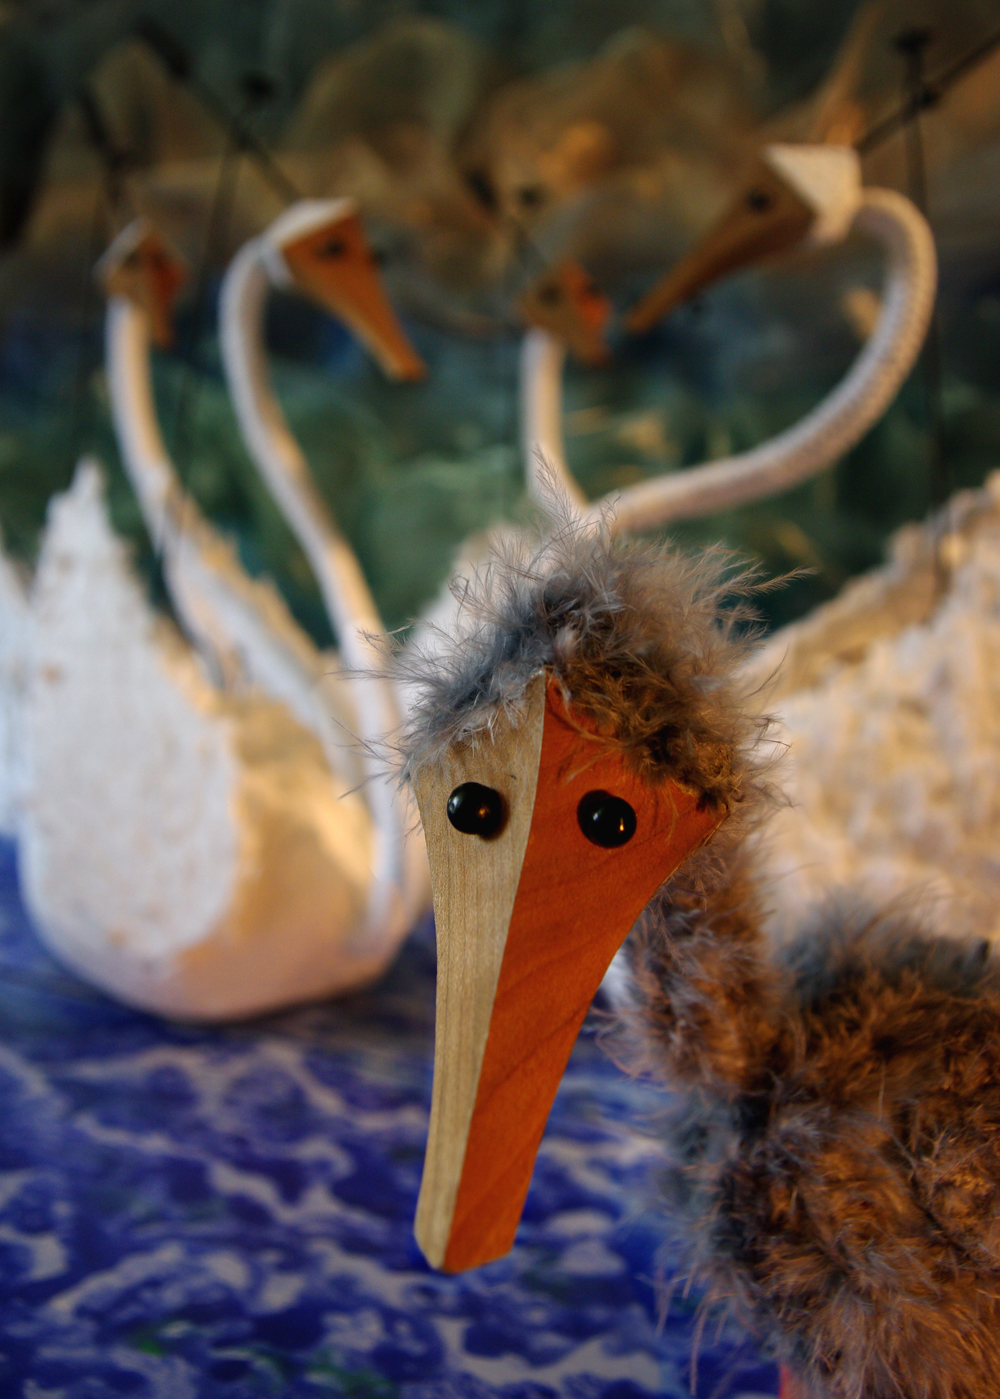 Sea Legs Puppet Theatre presents The Ugly Duckling